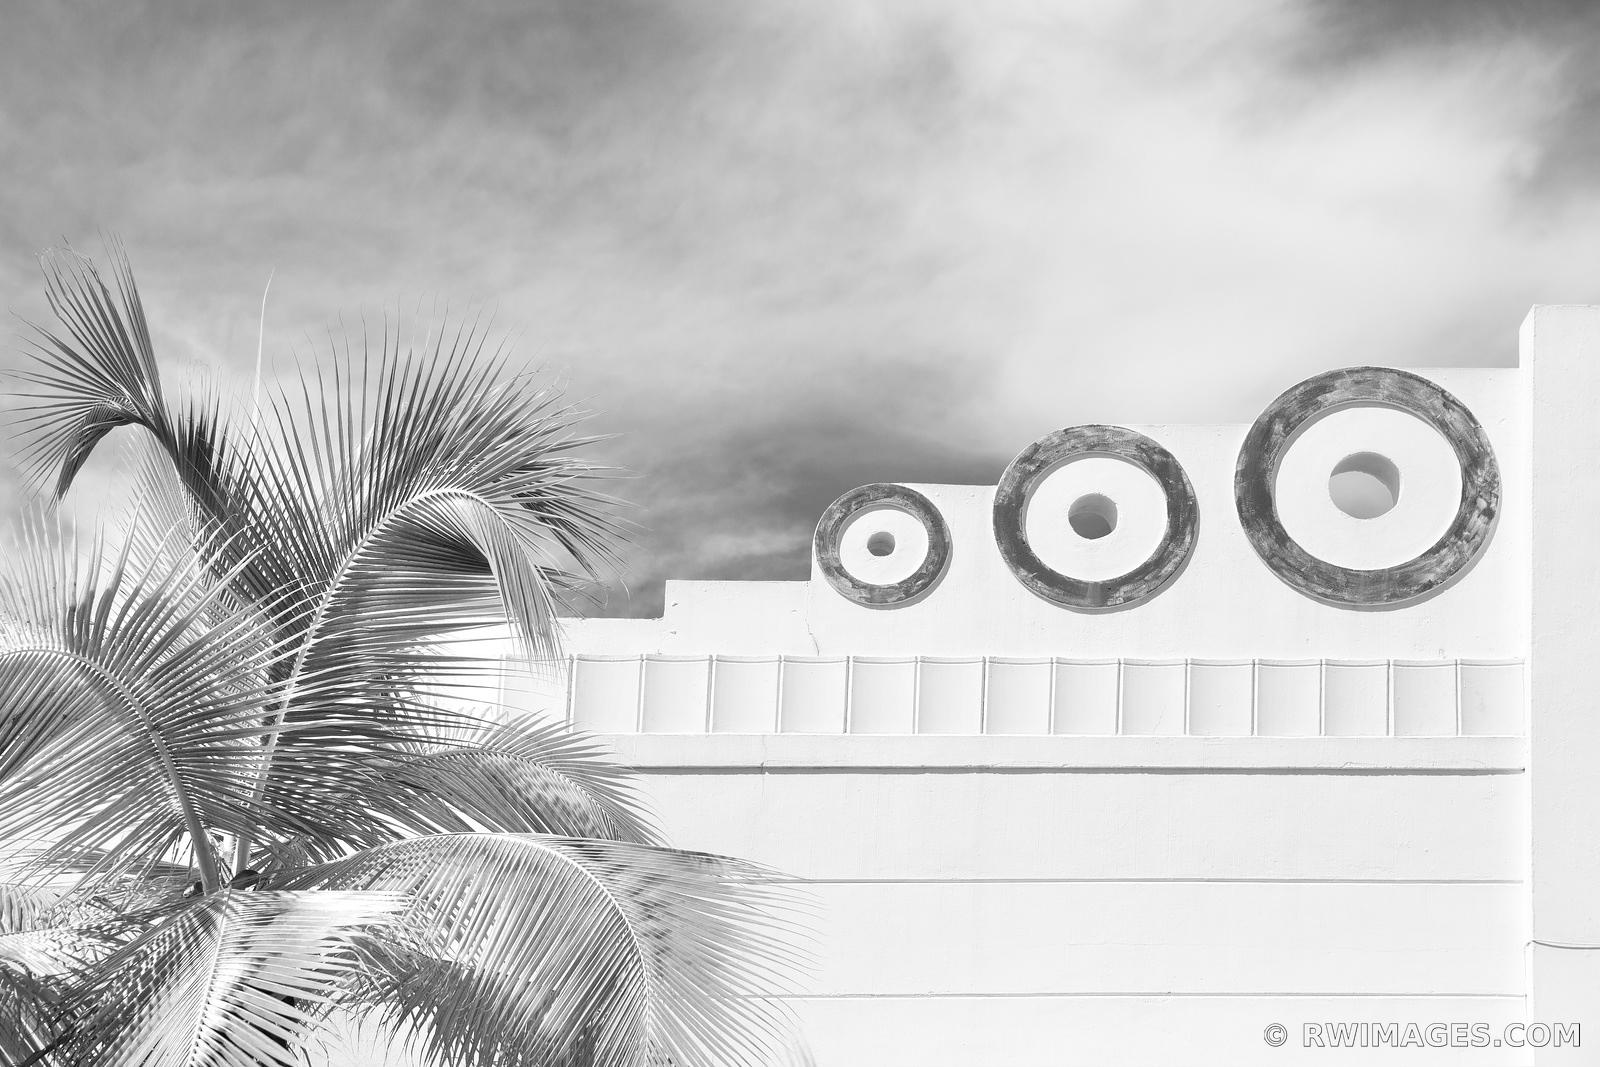 ART DECO ARCHITECTURE MIAMI BEACH FLORIDA BLACK AND WHITE HORIZONTAL